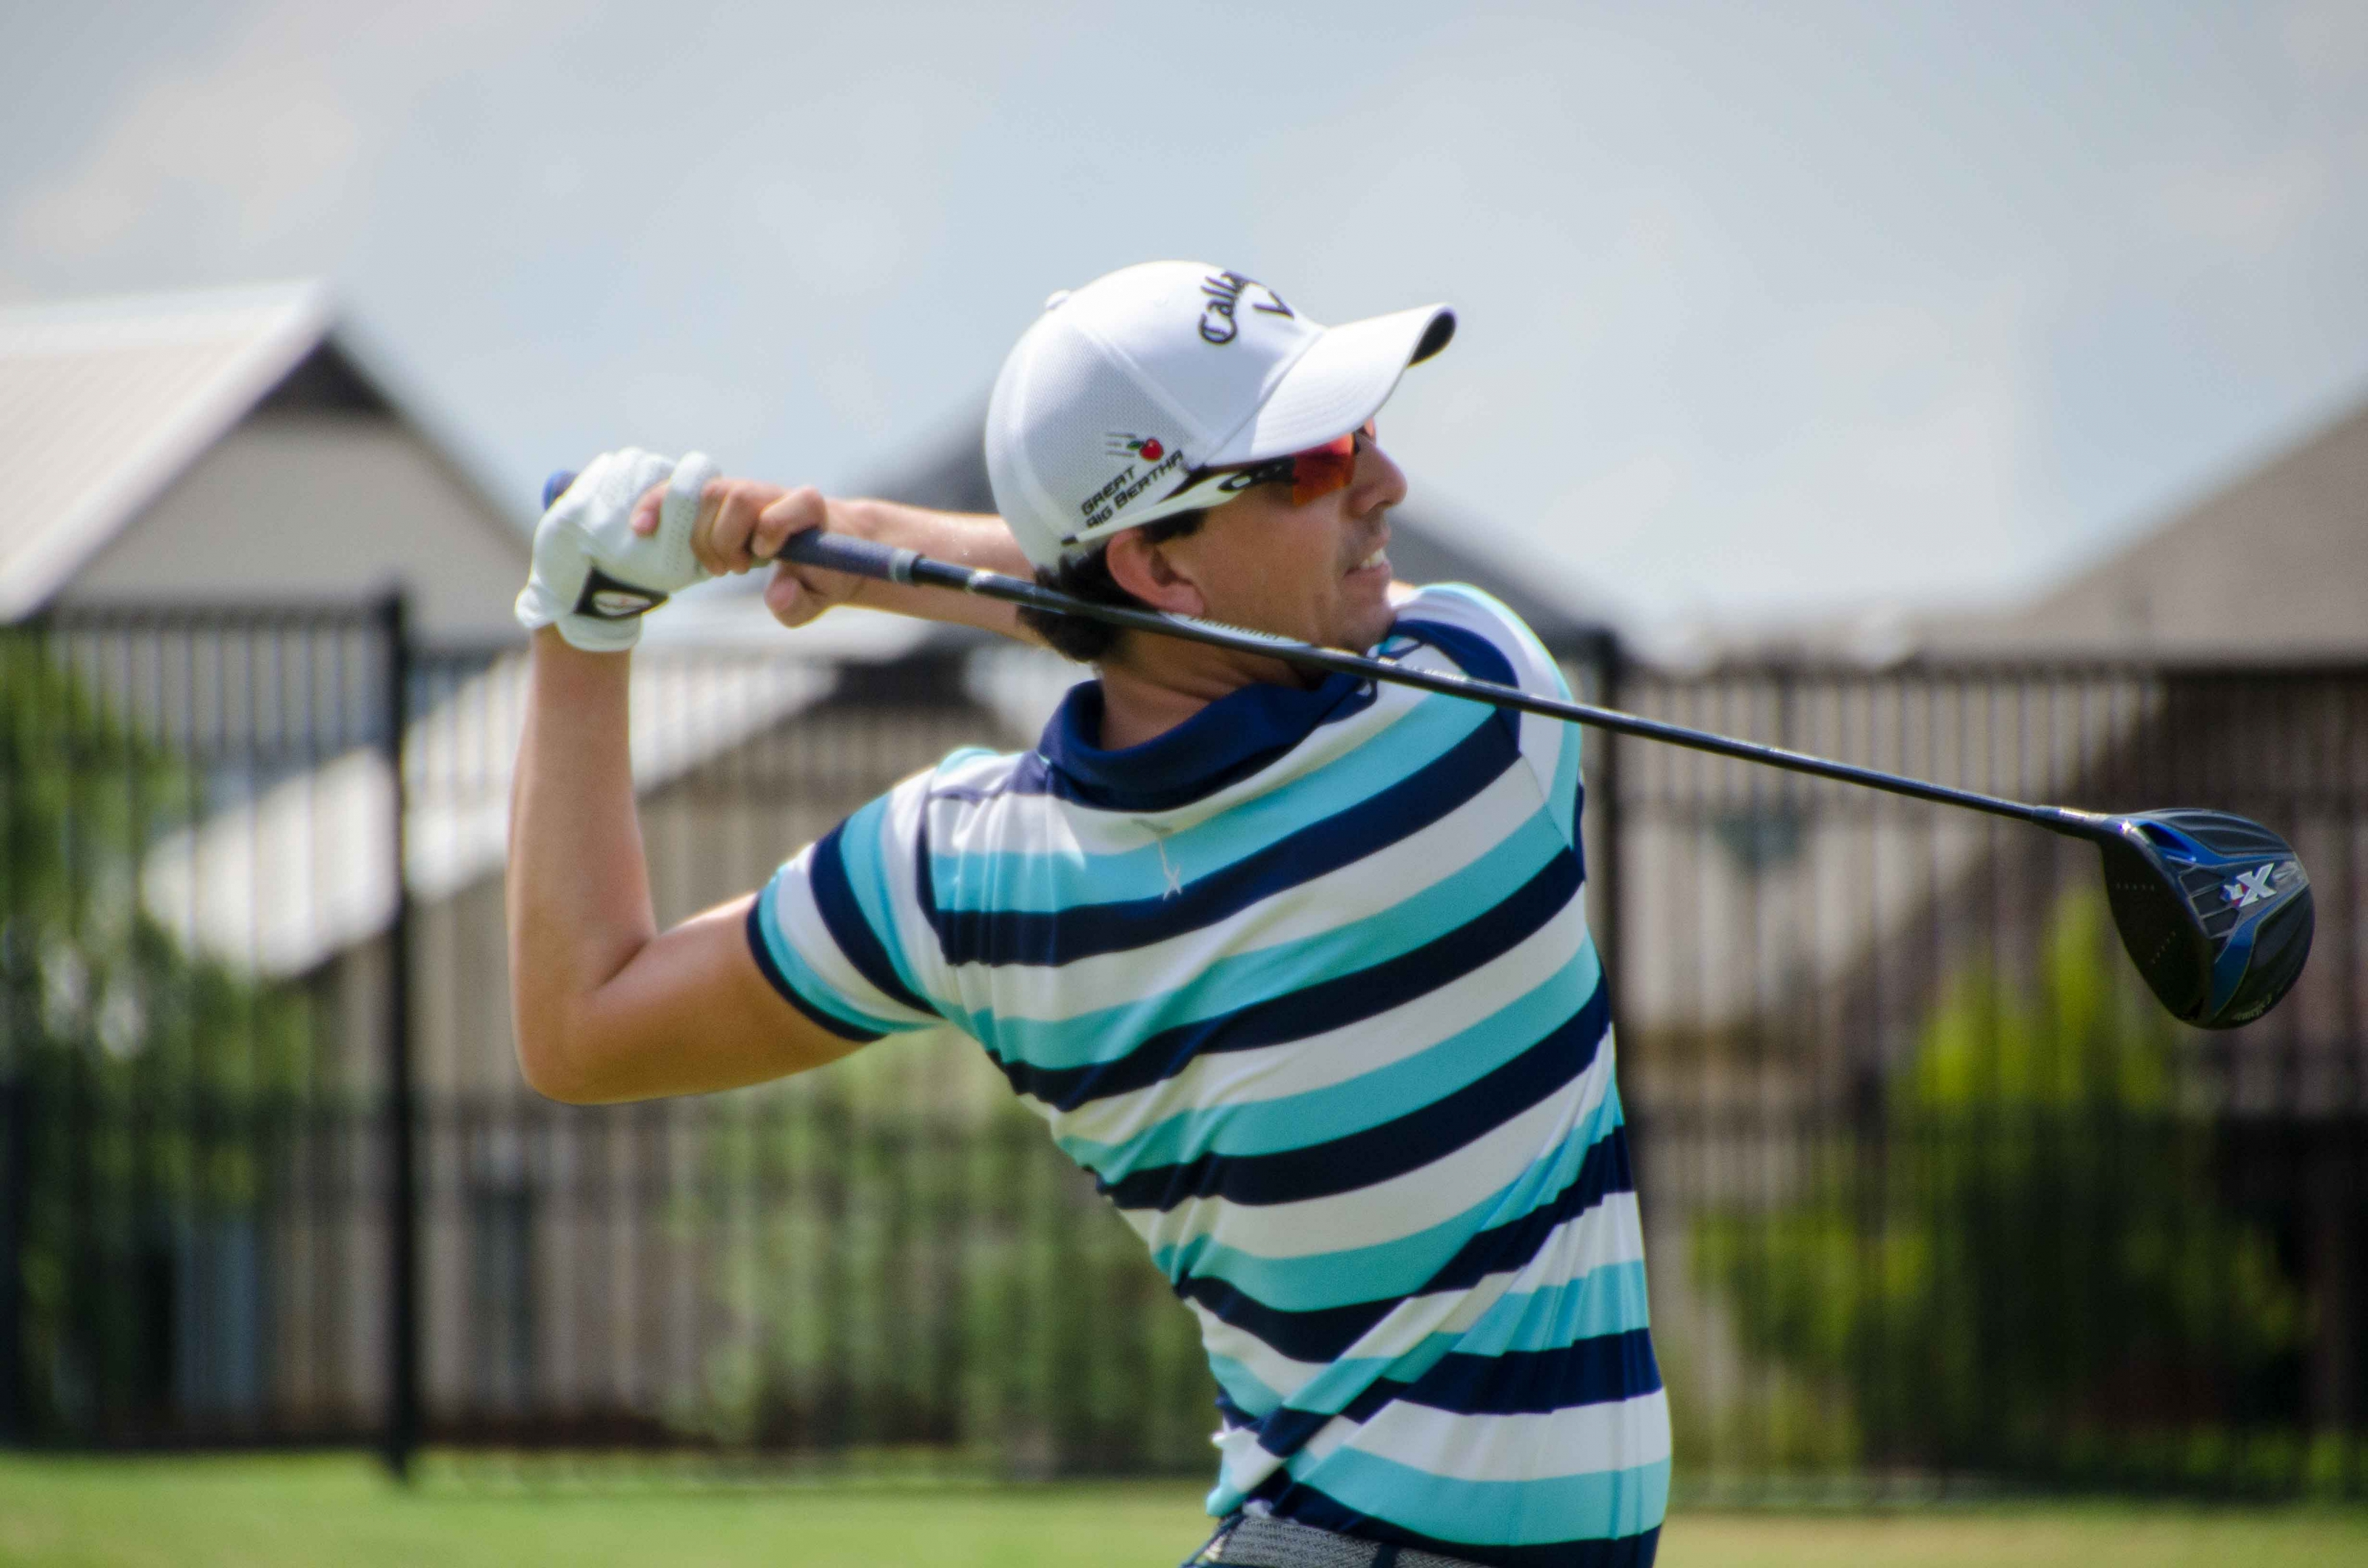 Fernandez Seizes Lead at 46th Veritex Bank Texas State Open, Round Two Suspended